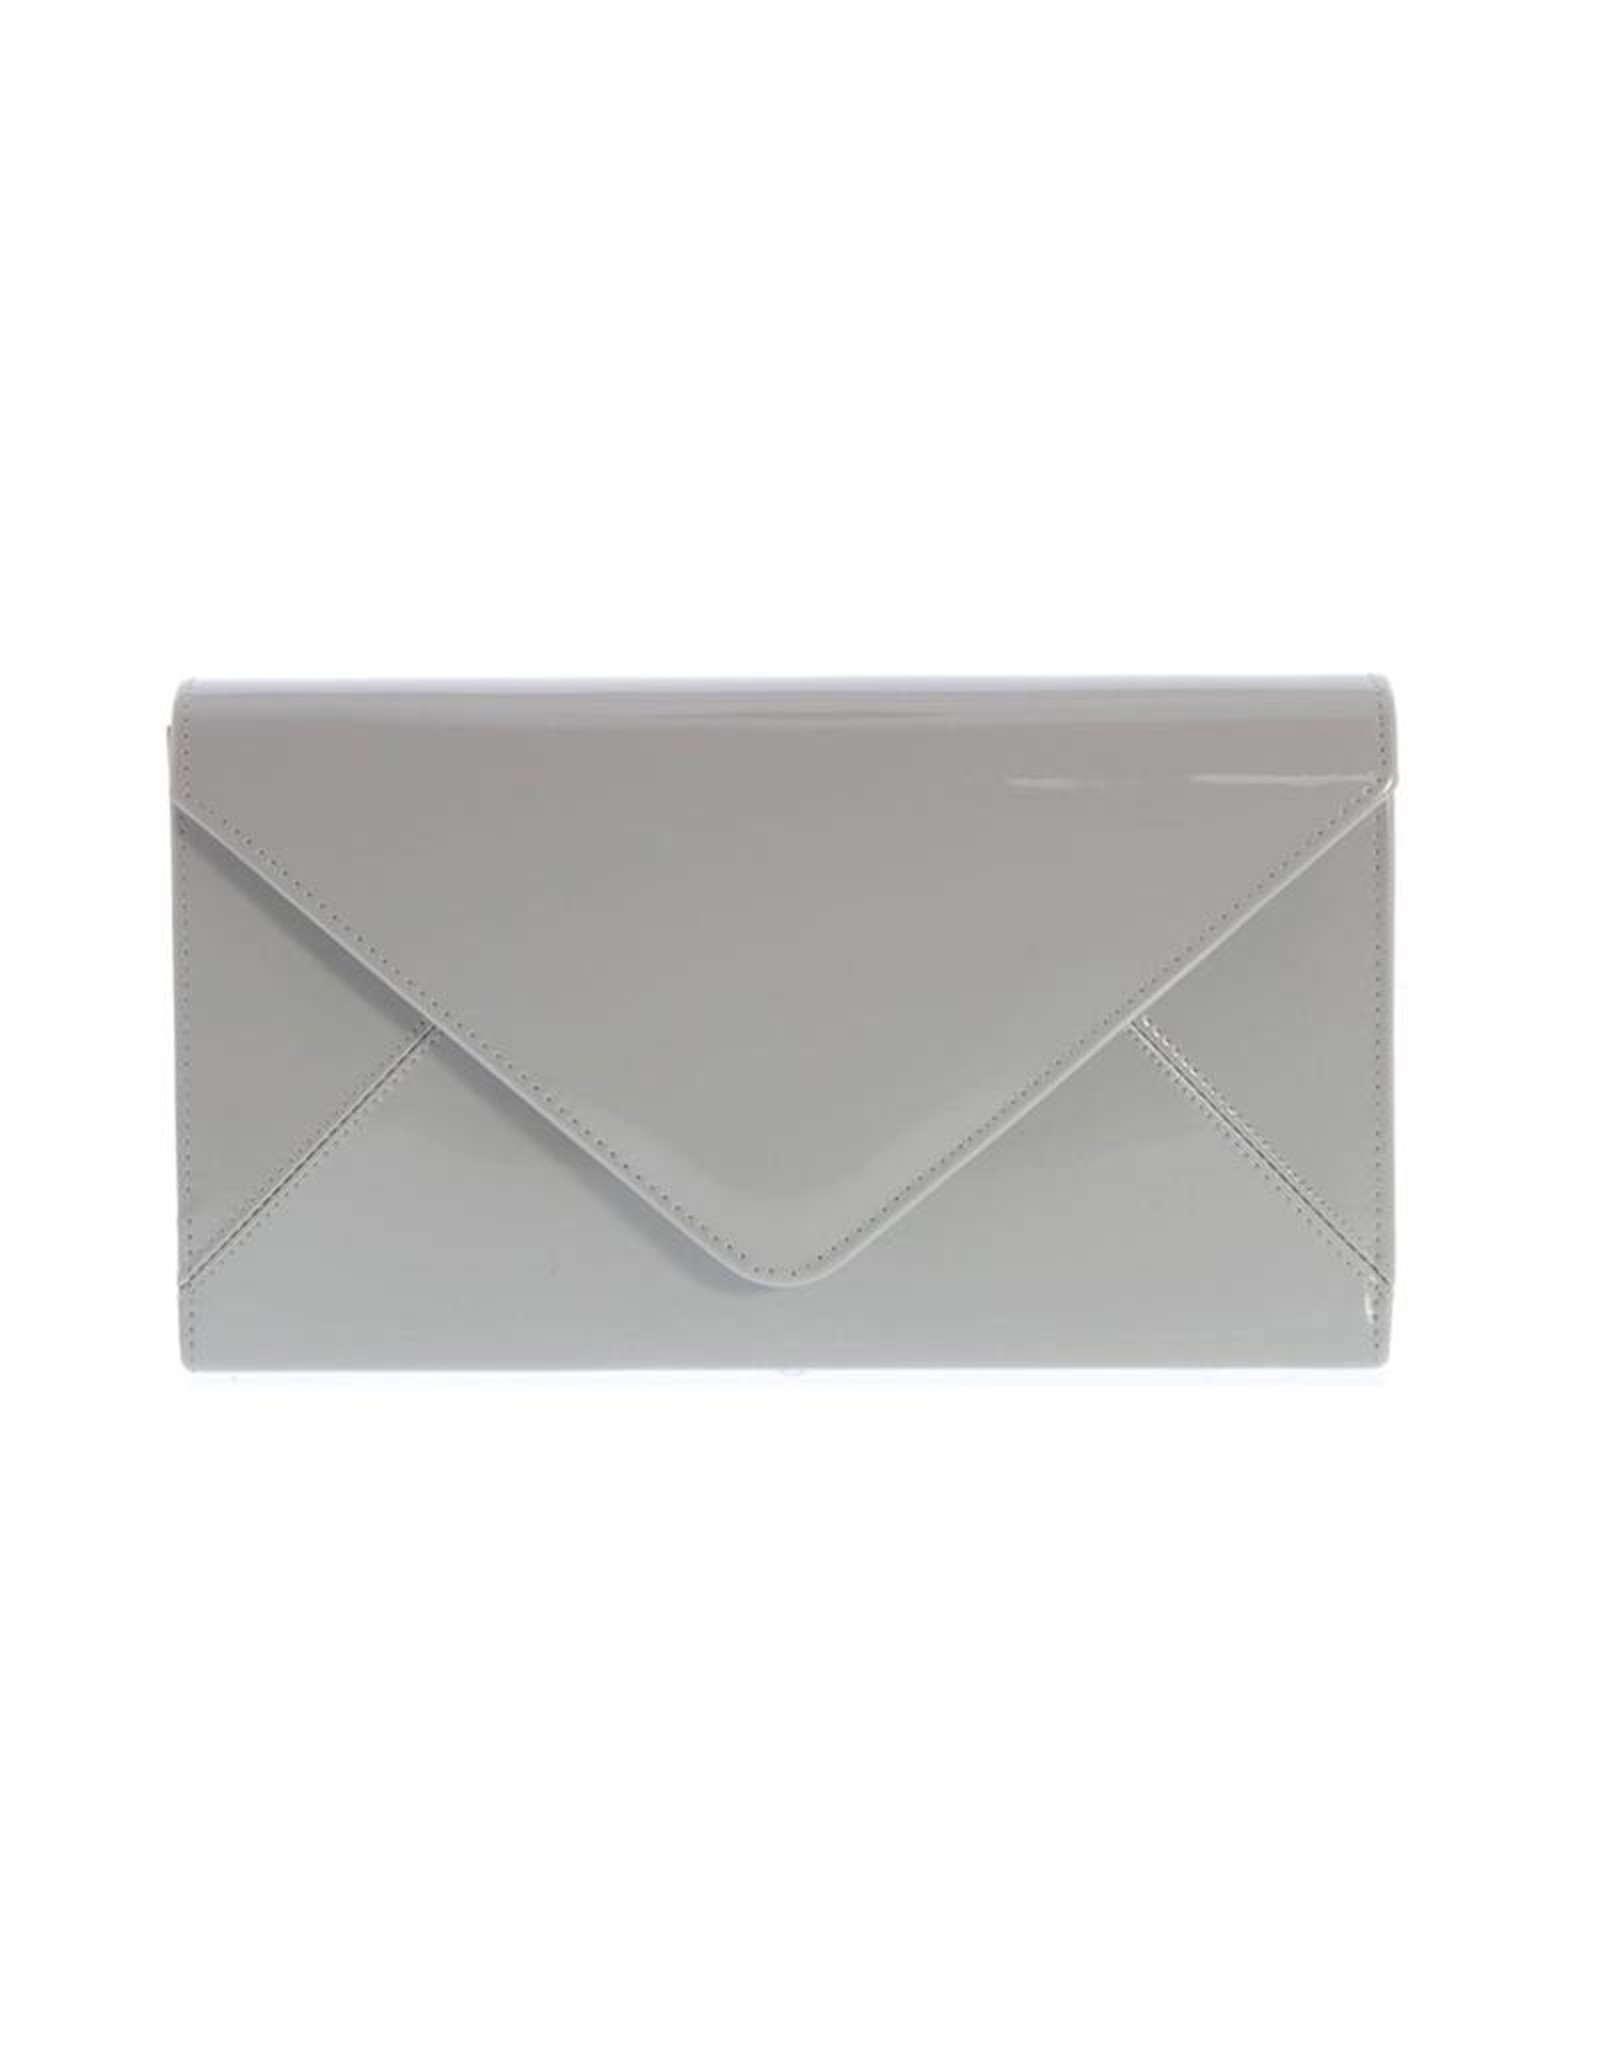 Gabee Products Keeley Patent Envelope Clutch